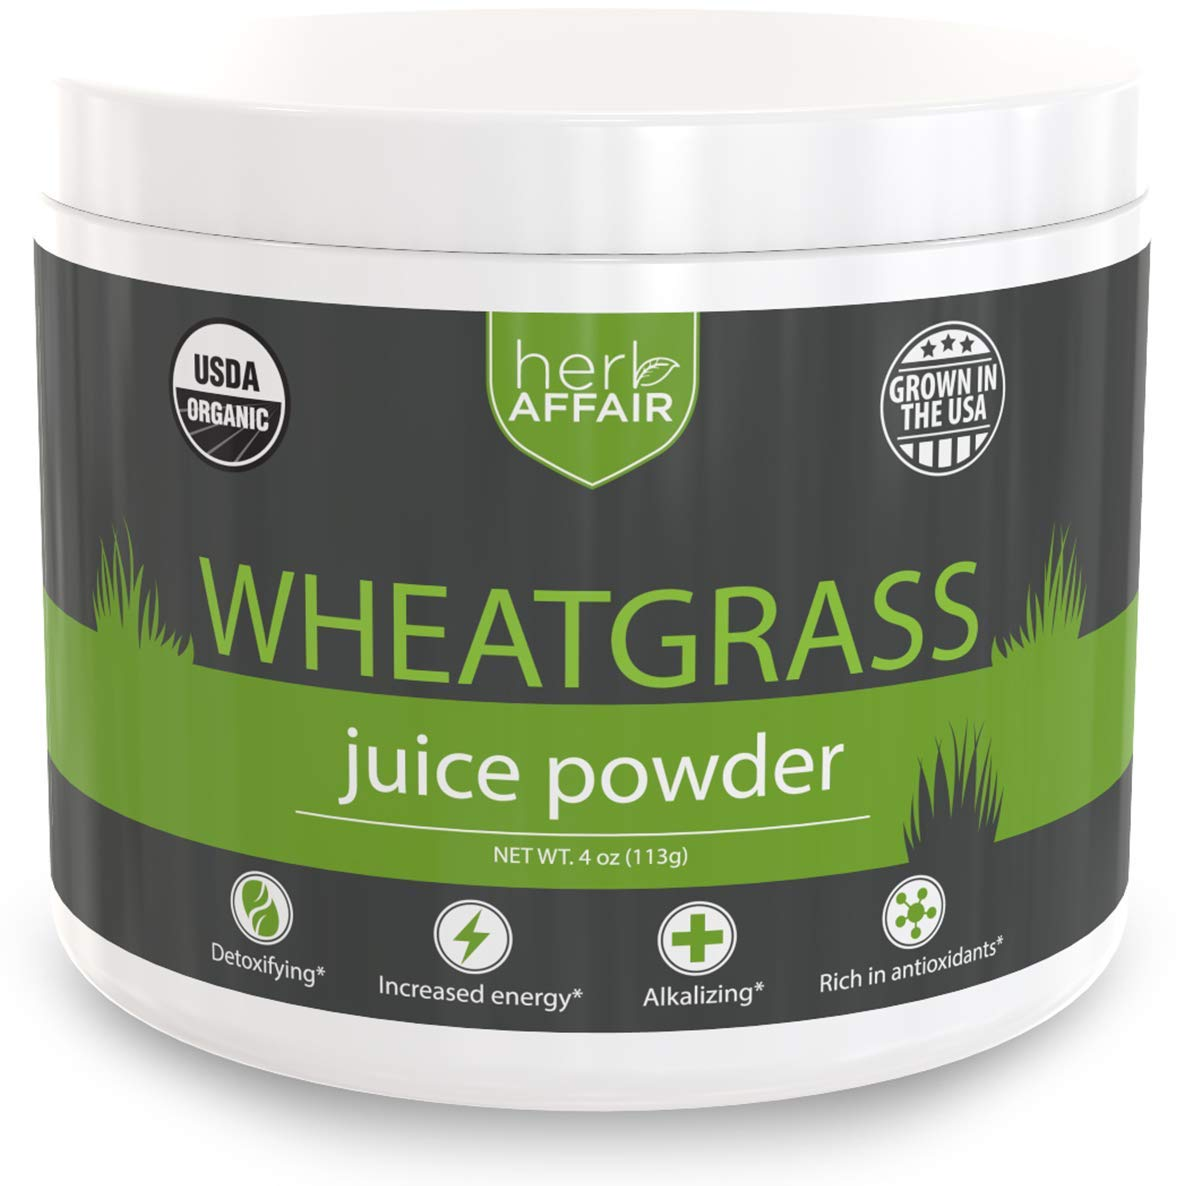 Wheat Grass Juice Powder, Organic | Mild, Sweet Flavor and Easy to Mix - US Grown, Non-GMO, High Chlorophyll Superfood - Make The Perfect Wheatgrass Shot Everytime - 45 Servings